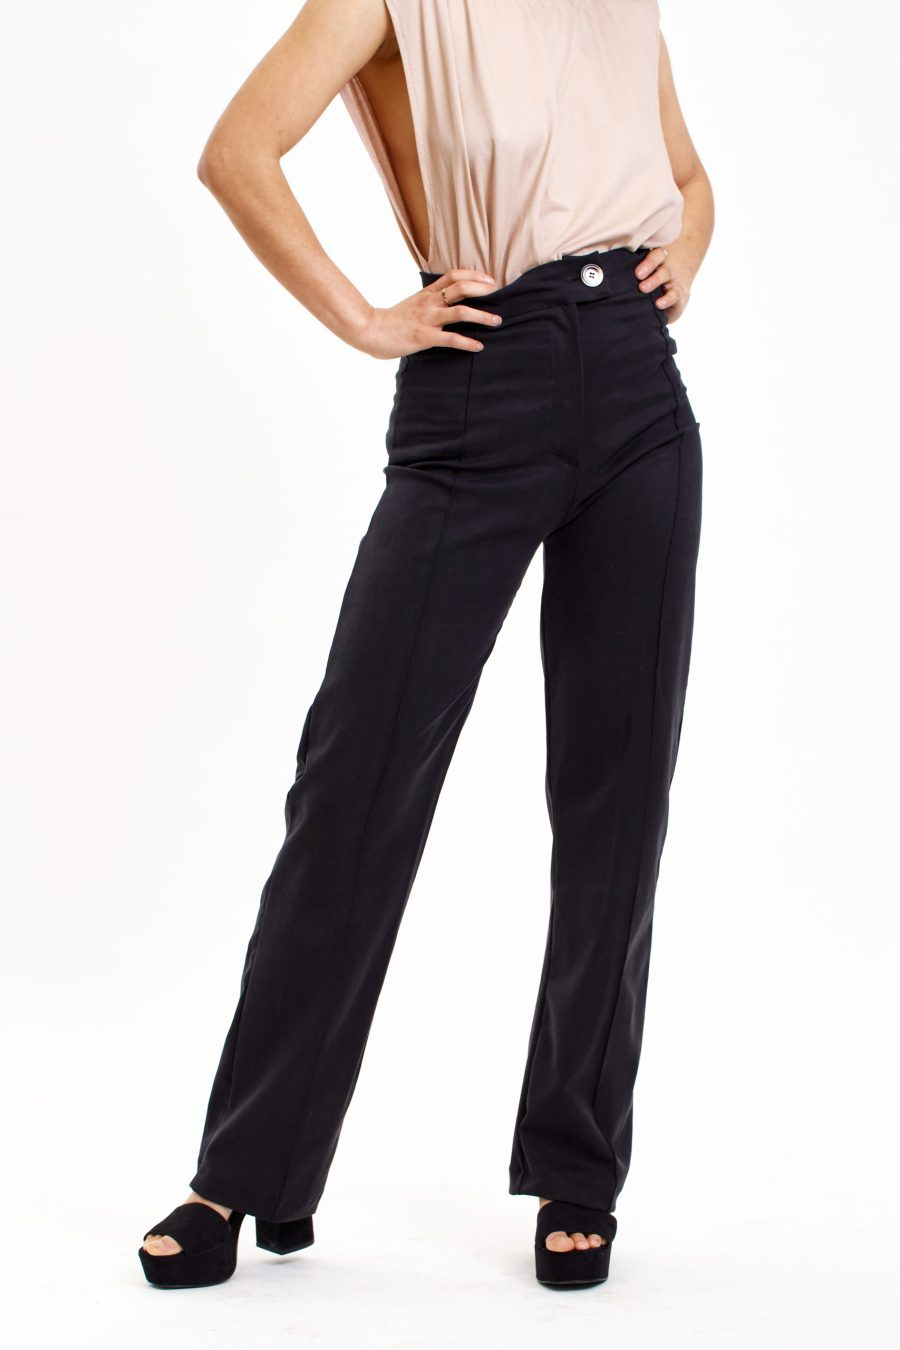 Dawn pants in black front 2